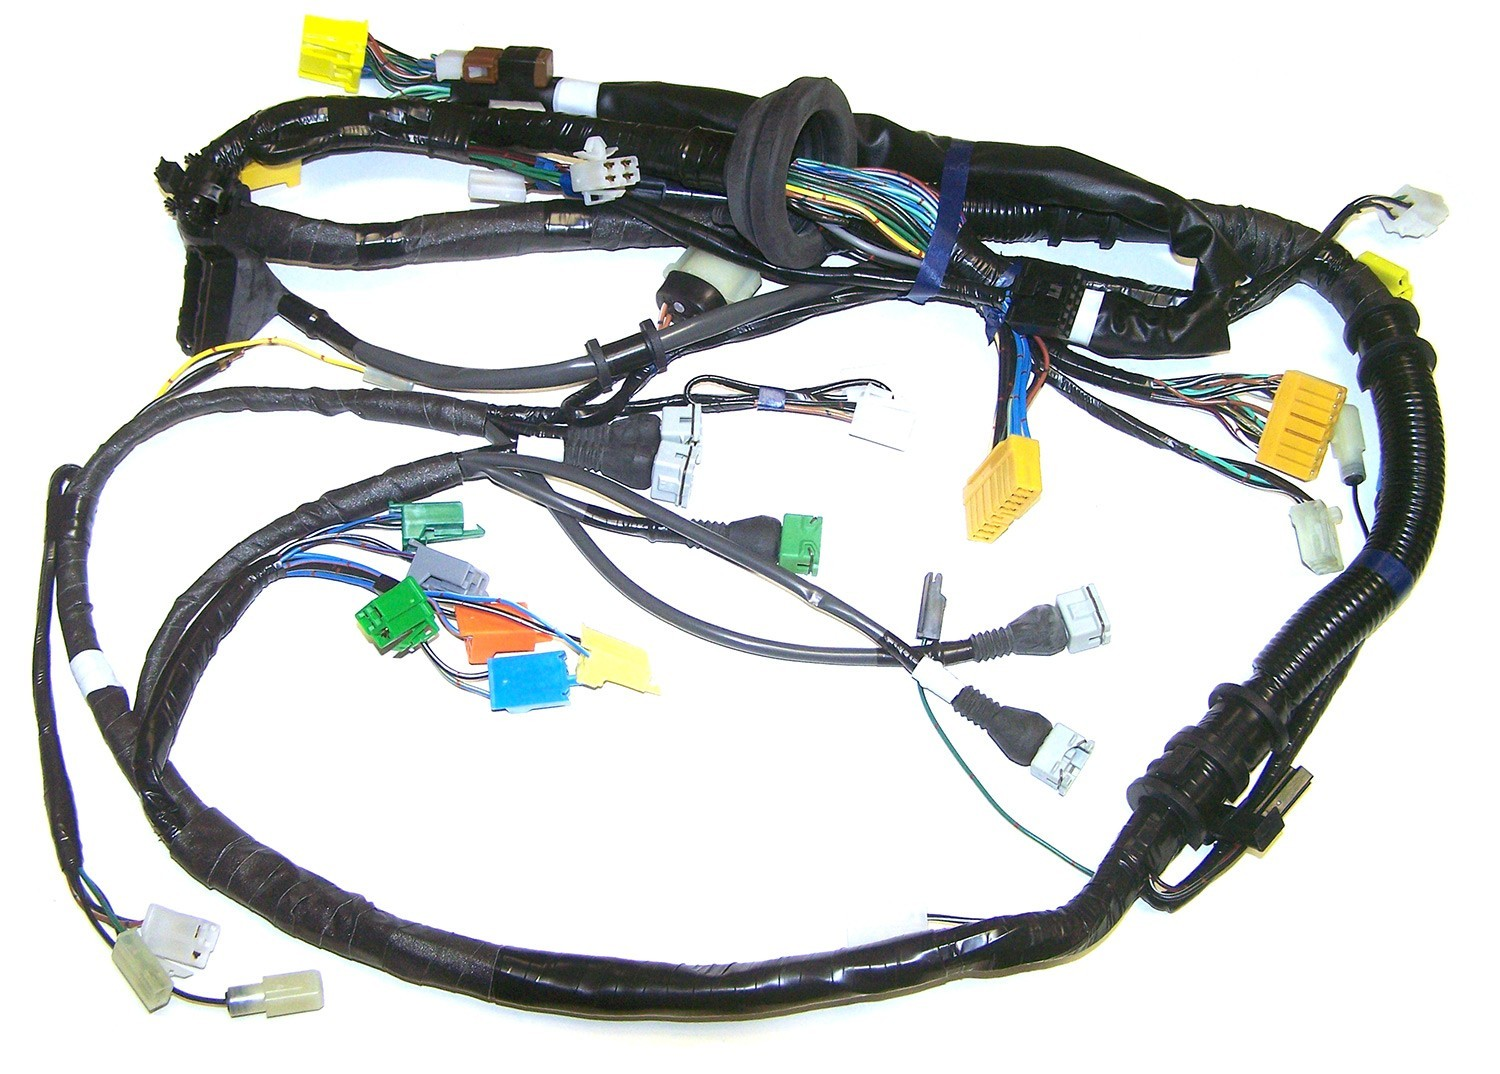 N332 18 051KDetail 87 88 turbo rx7 engine wiring harness (n332 18 051k) mazda rx7 wiring harness at gsmx.co